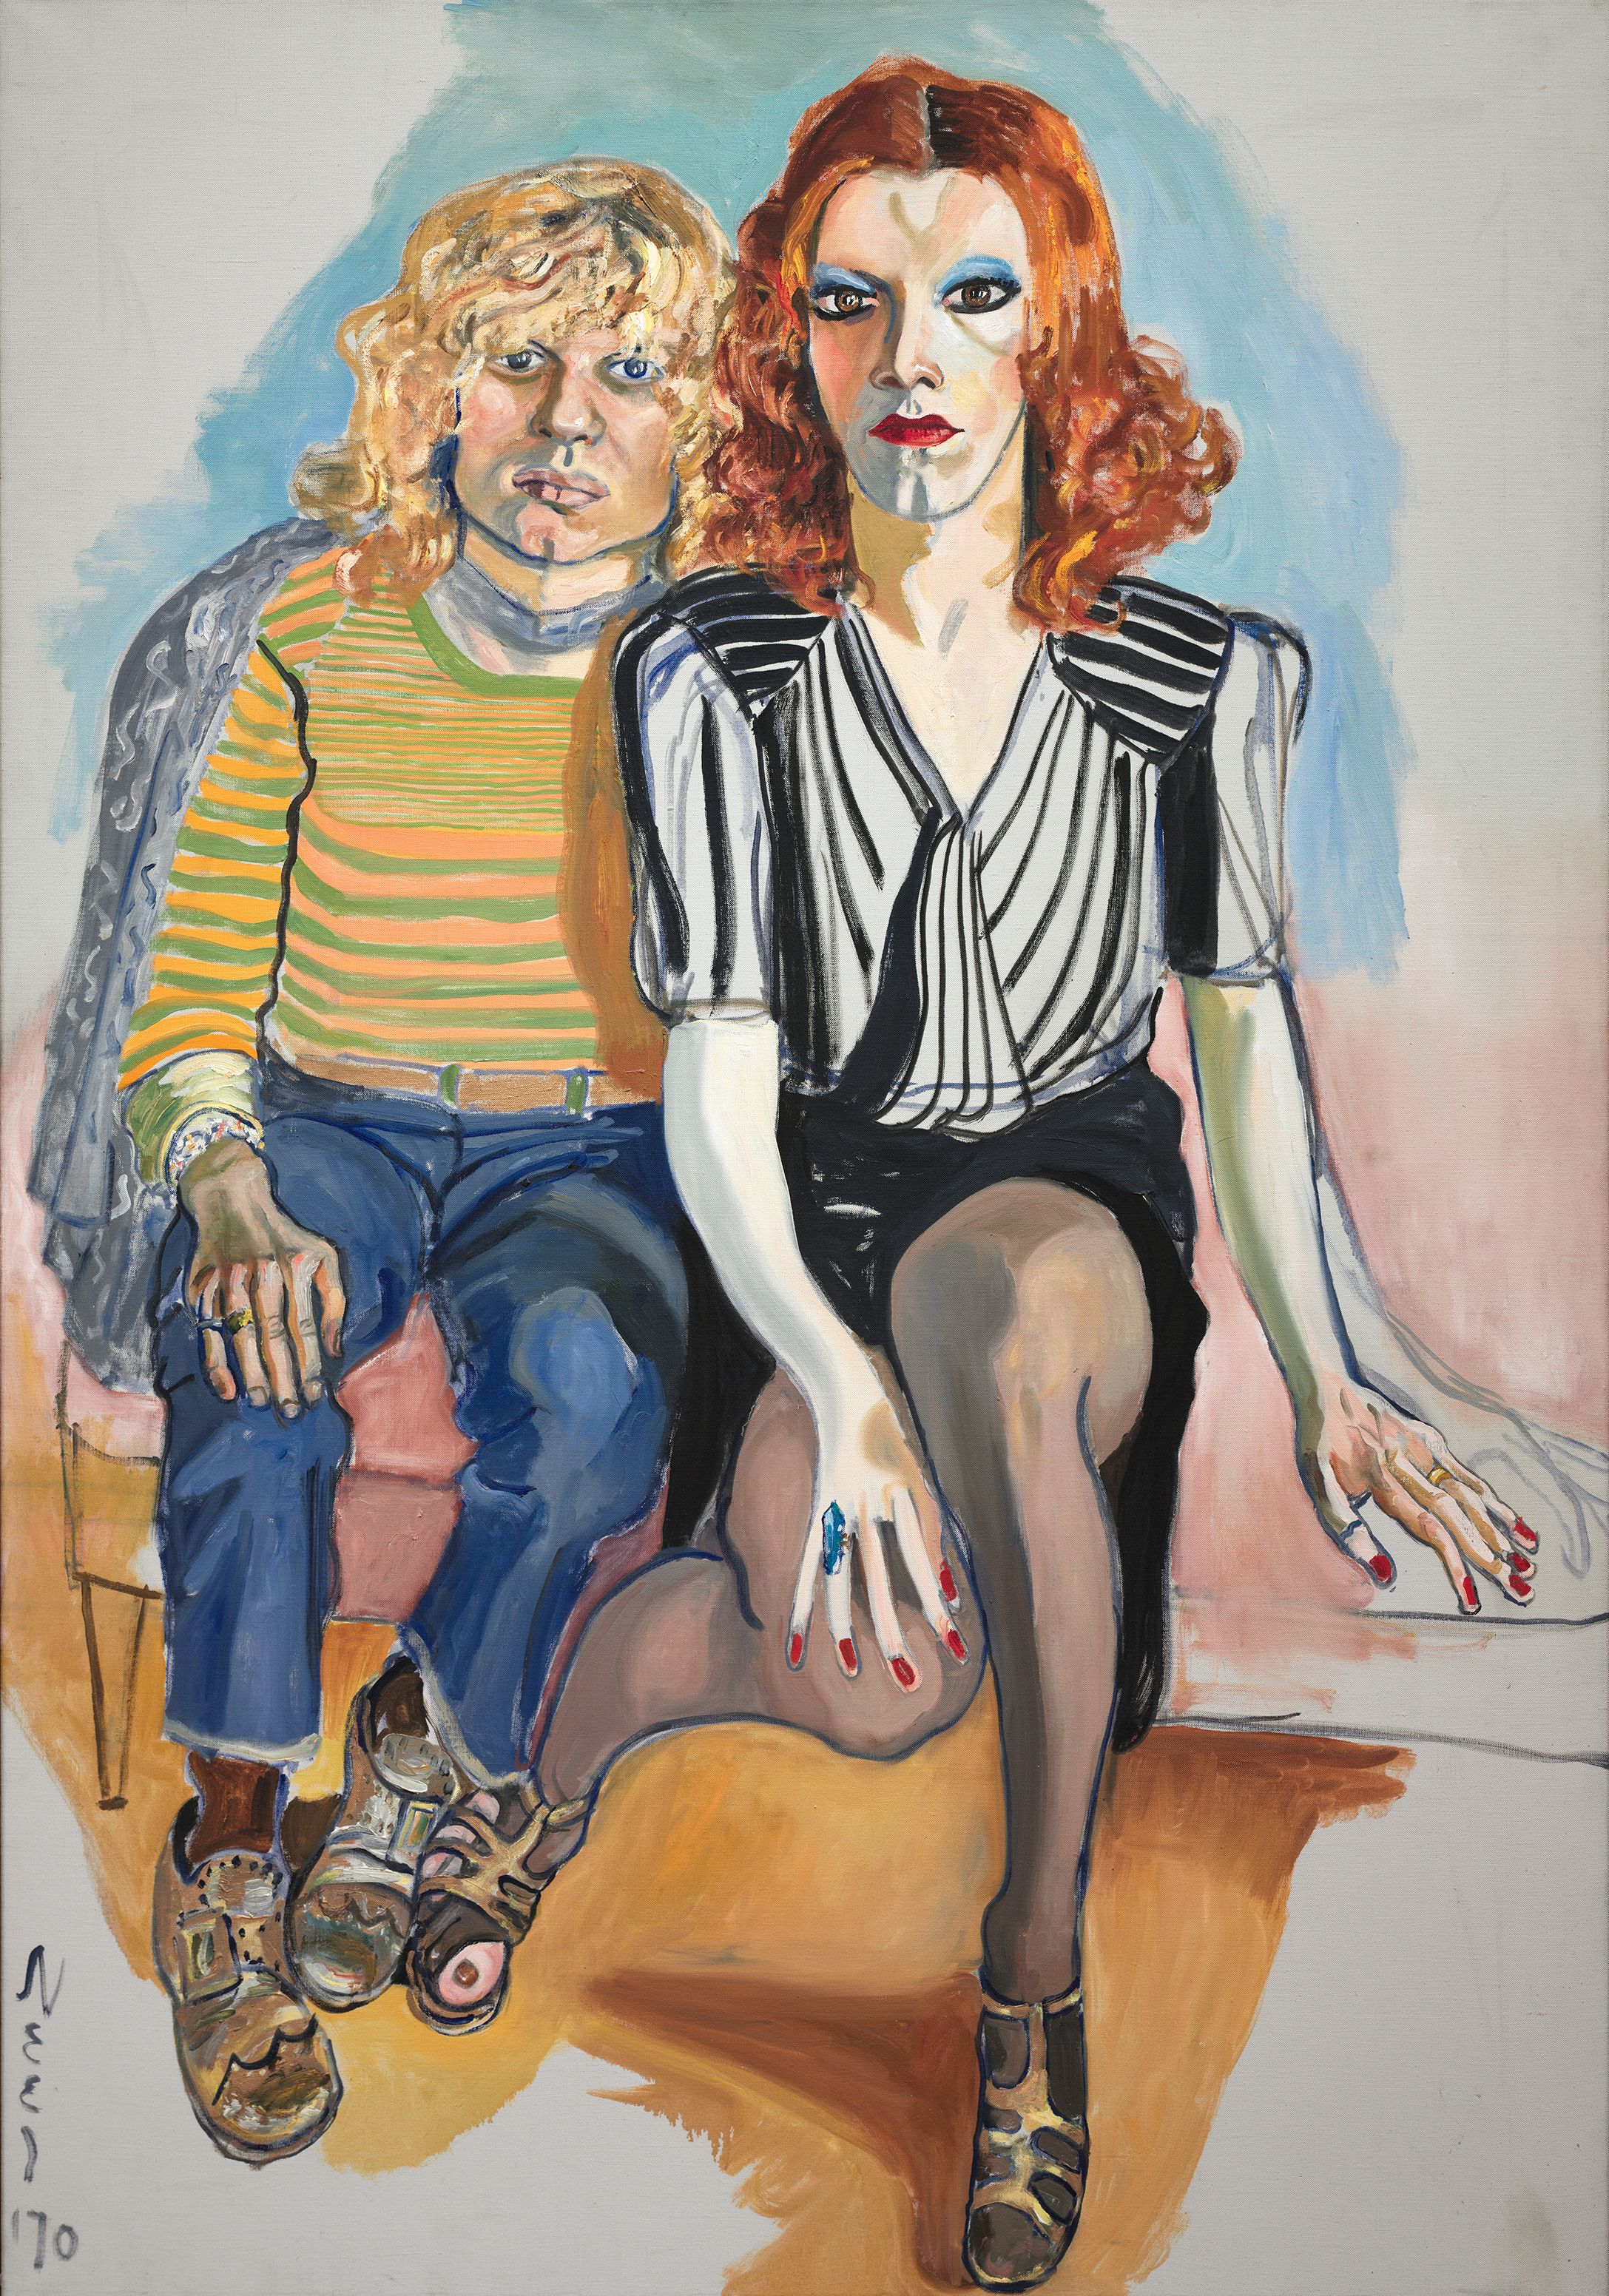 Alice Neel, (American, 1900–1984), Jackie Curtis and Ritta Redd, 1970, from